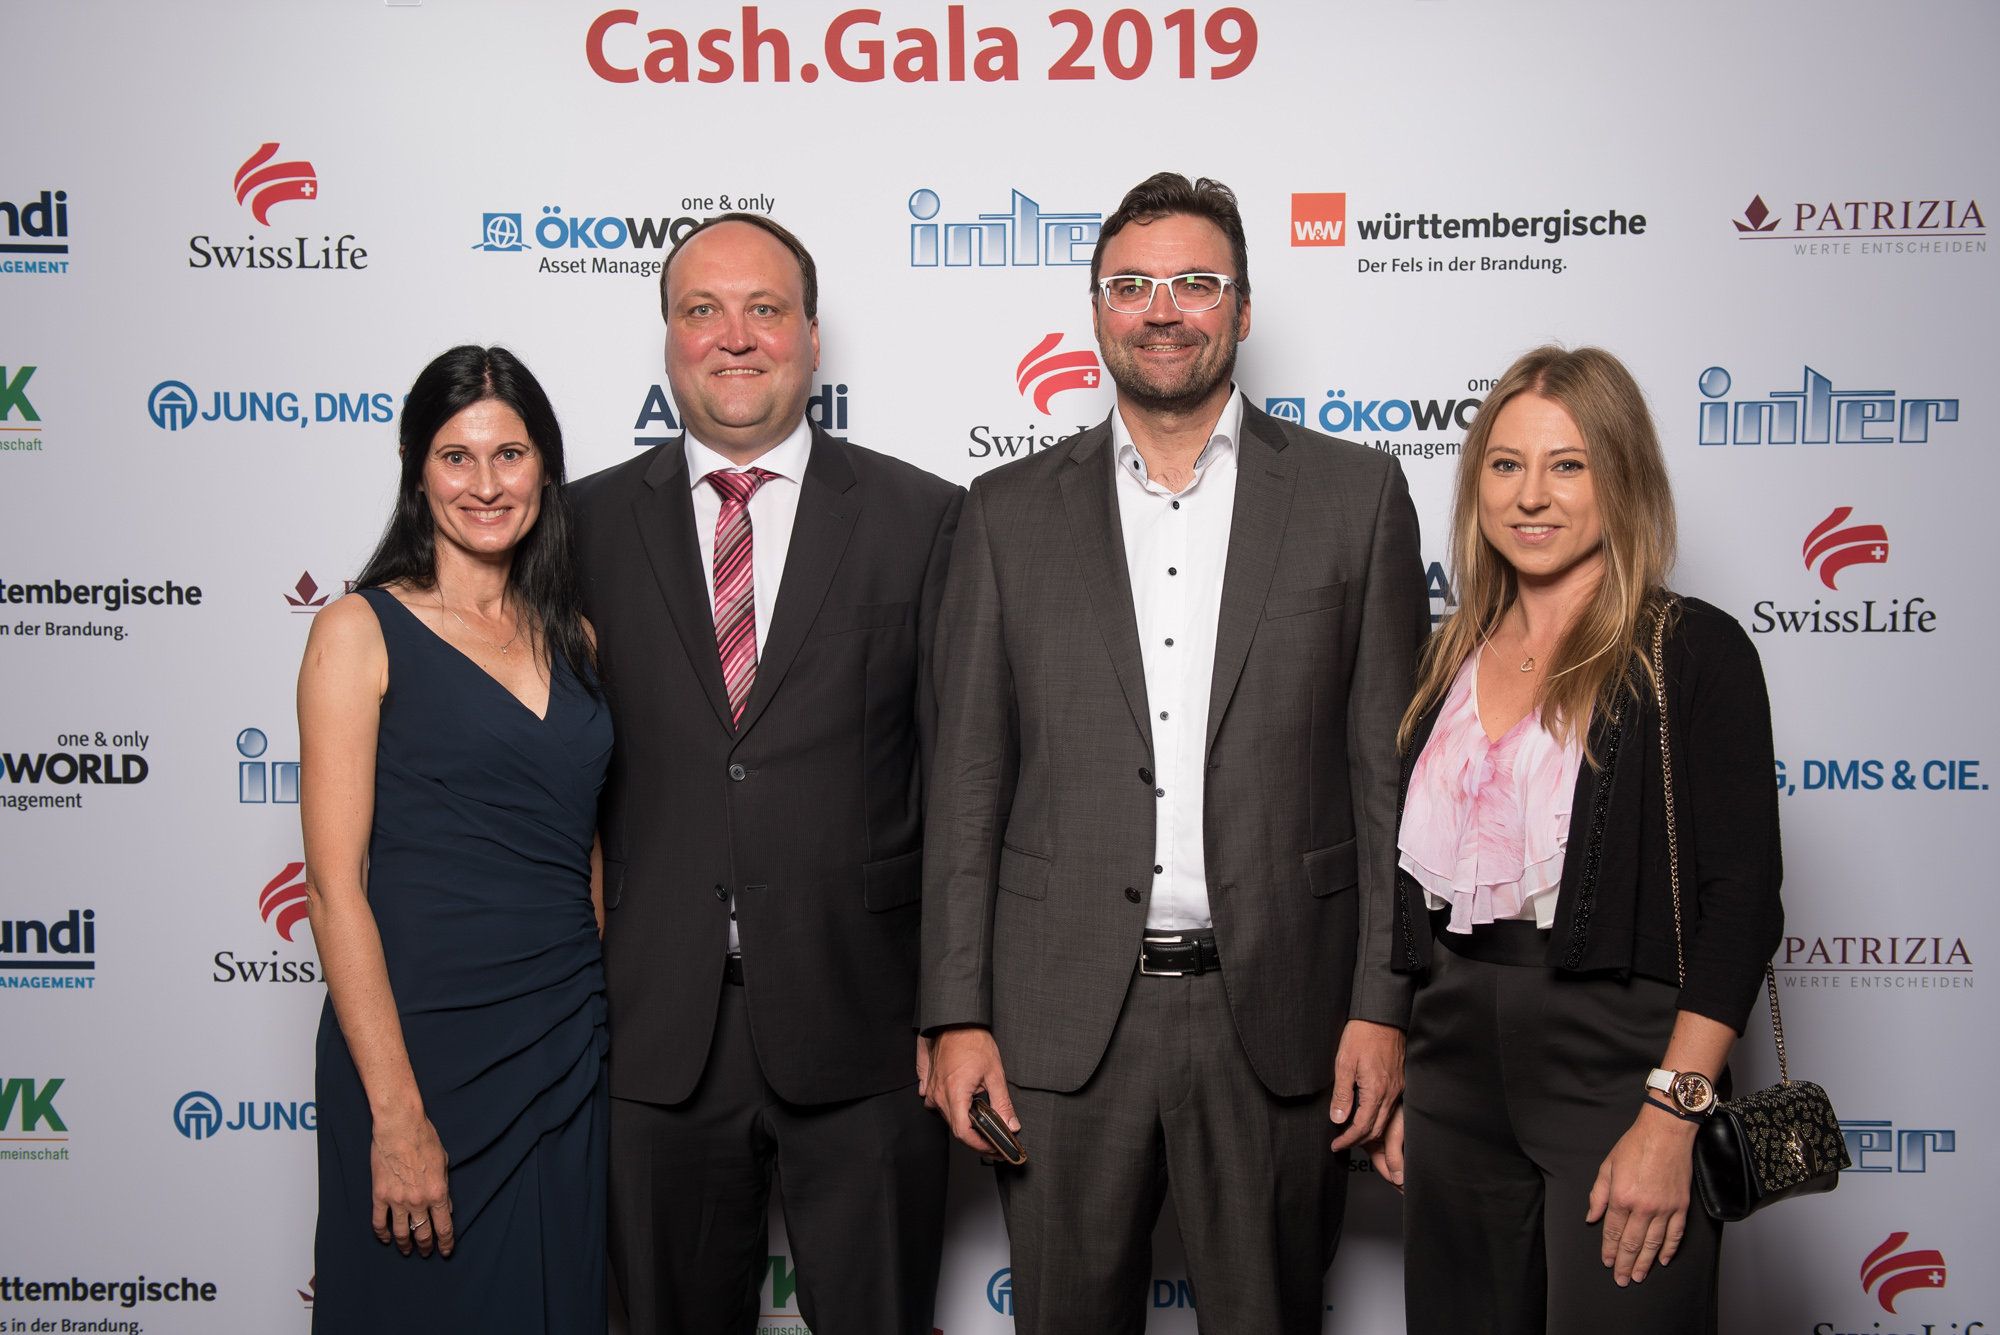 CashGala 2019 0013 AM DSC6978 in Cash.Gala 2019